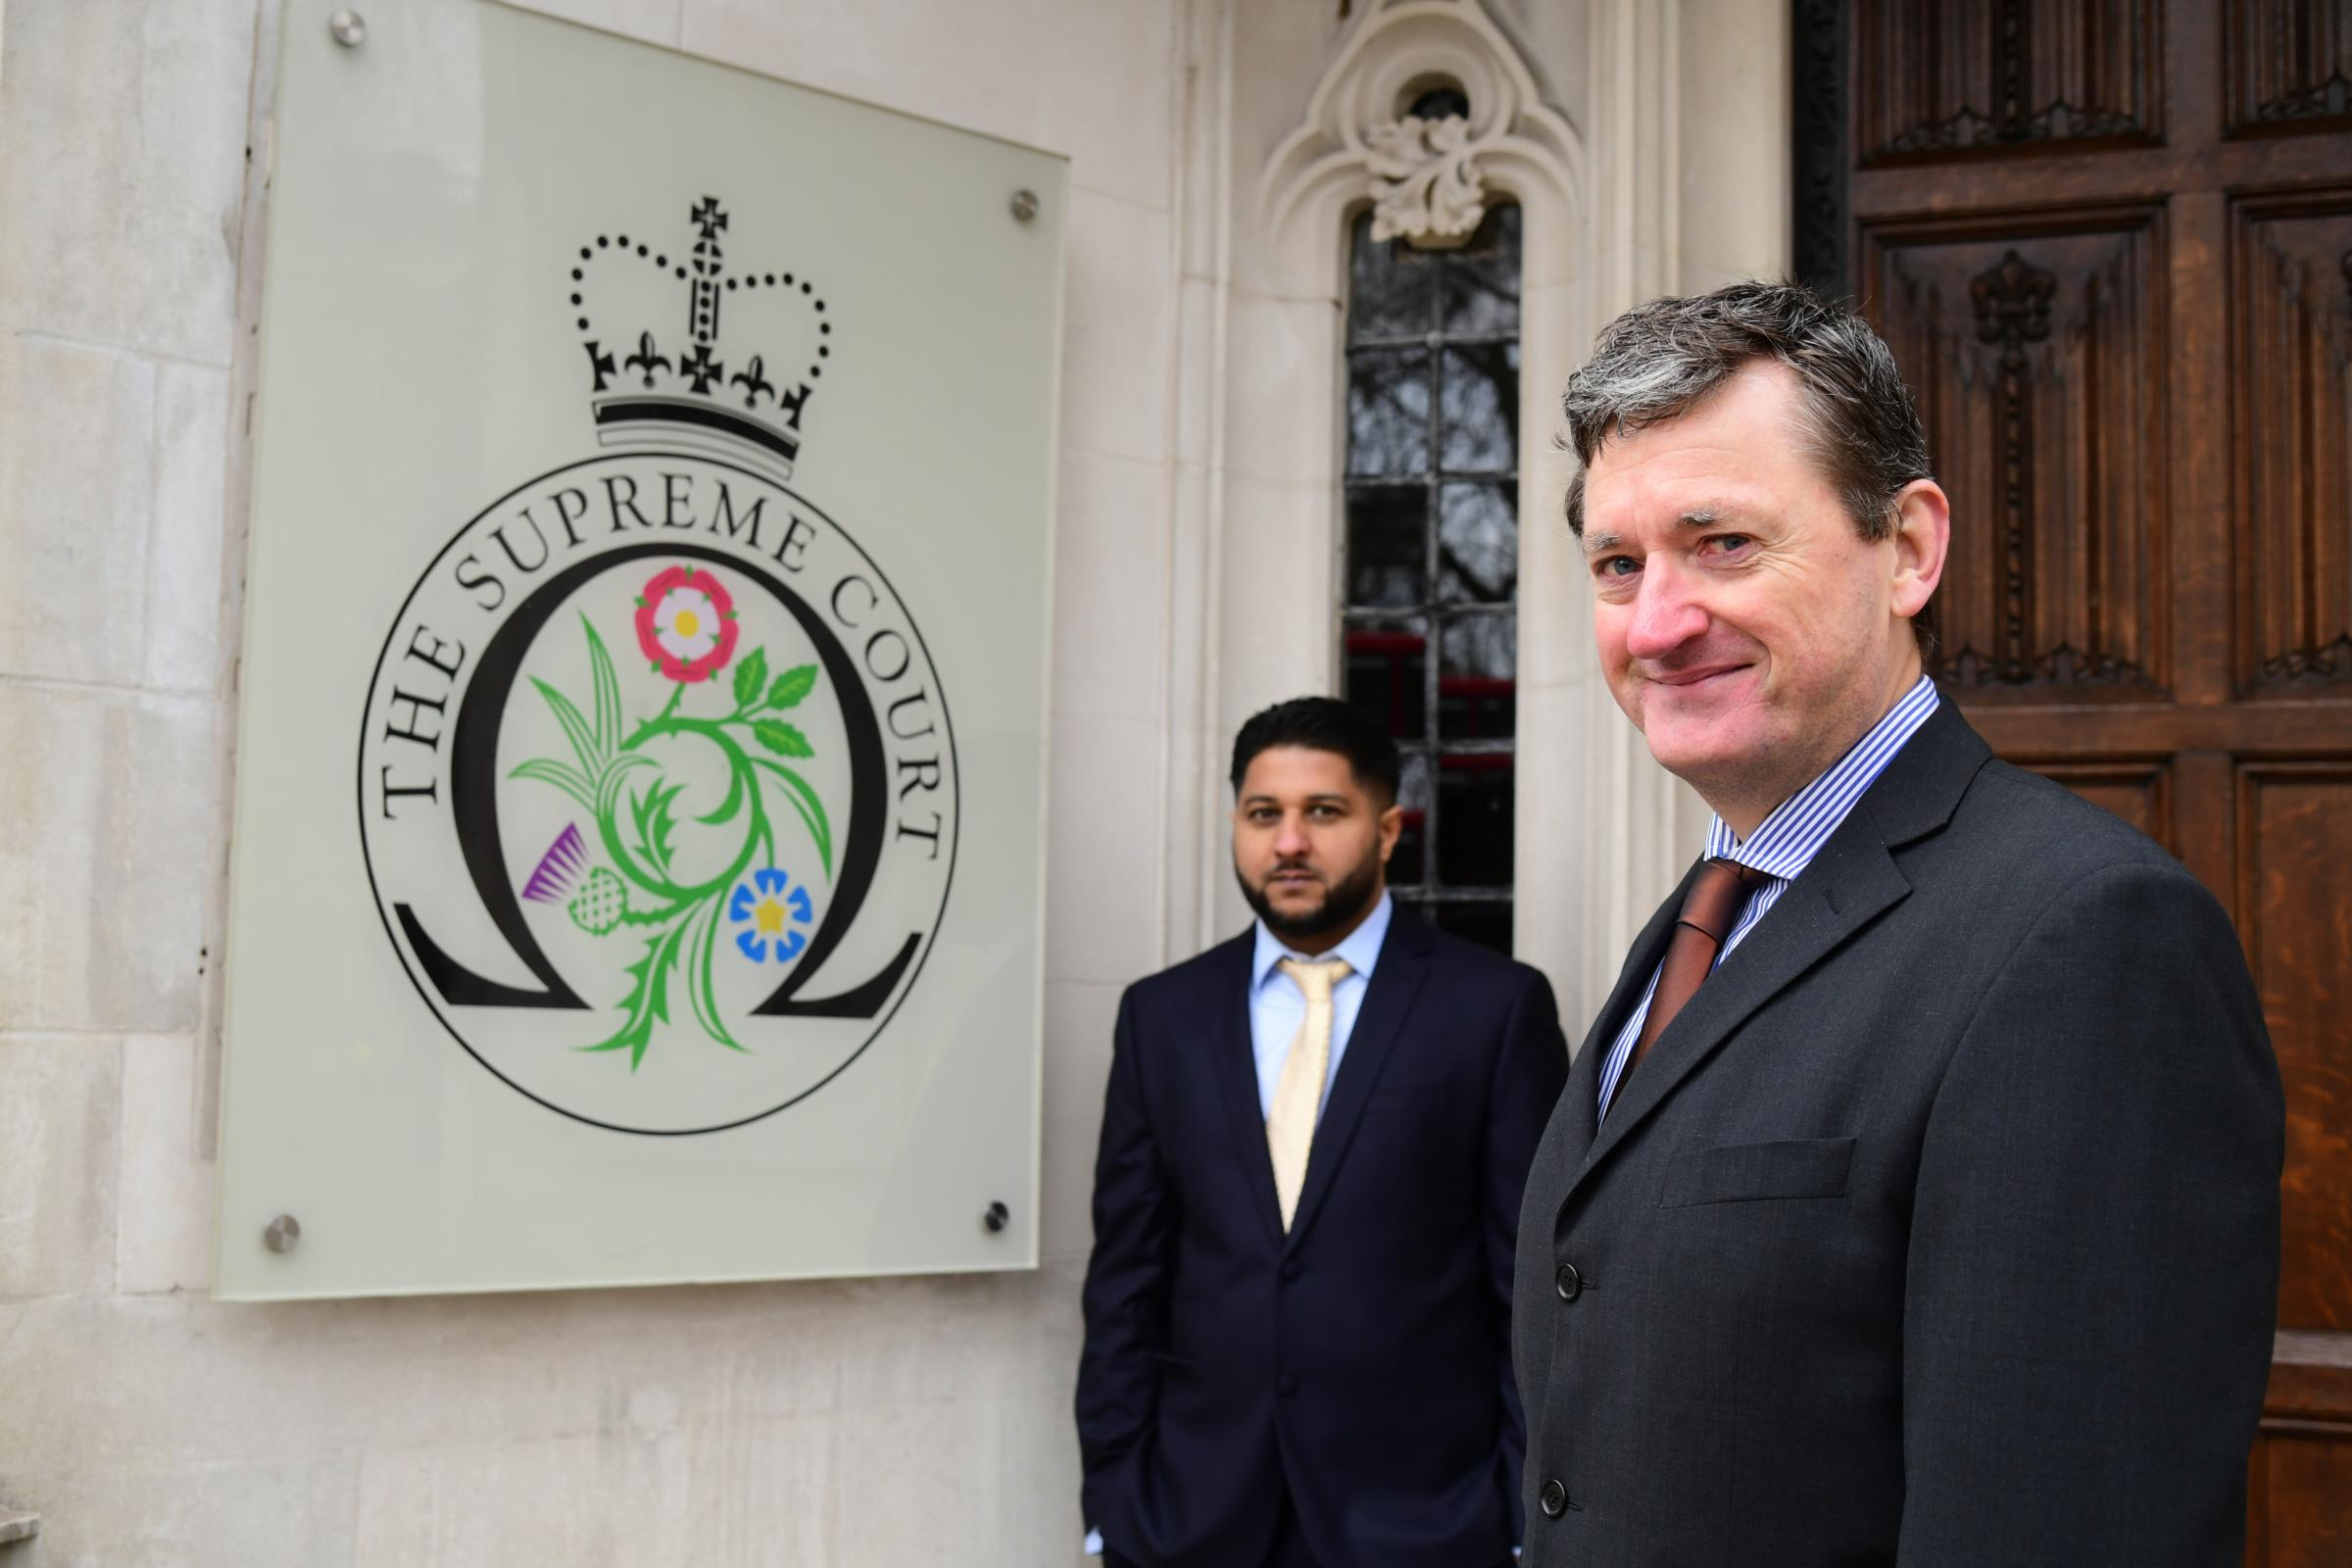 Former Uber drivers Yaseen Aslam (left) and James Farrar (right) had their initial Employment Tribunal decision upheld in the Supreme Court. Credit: PA